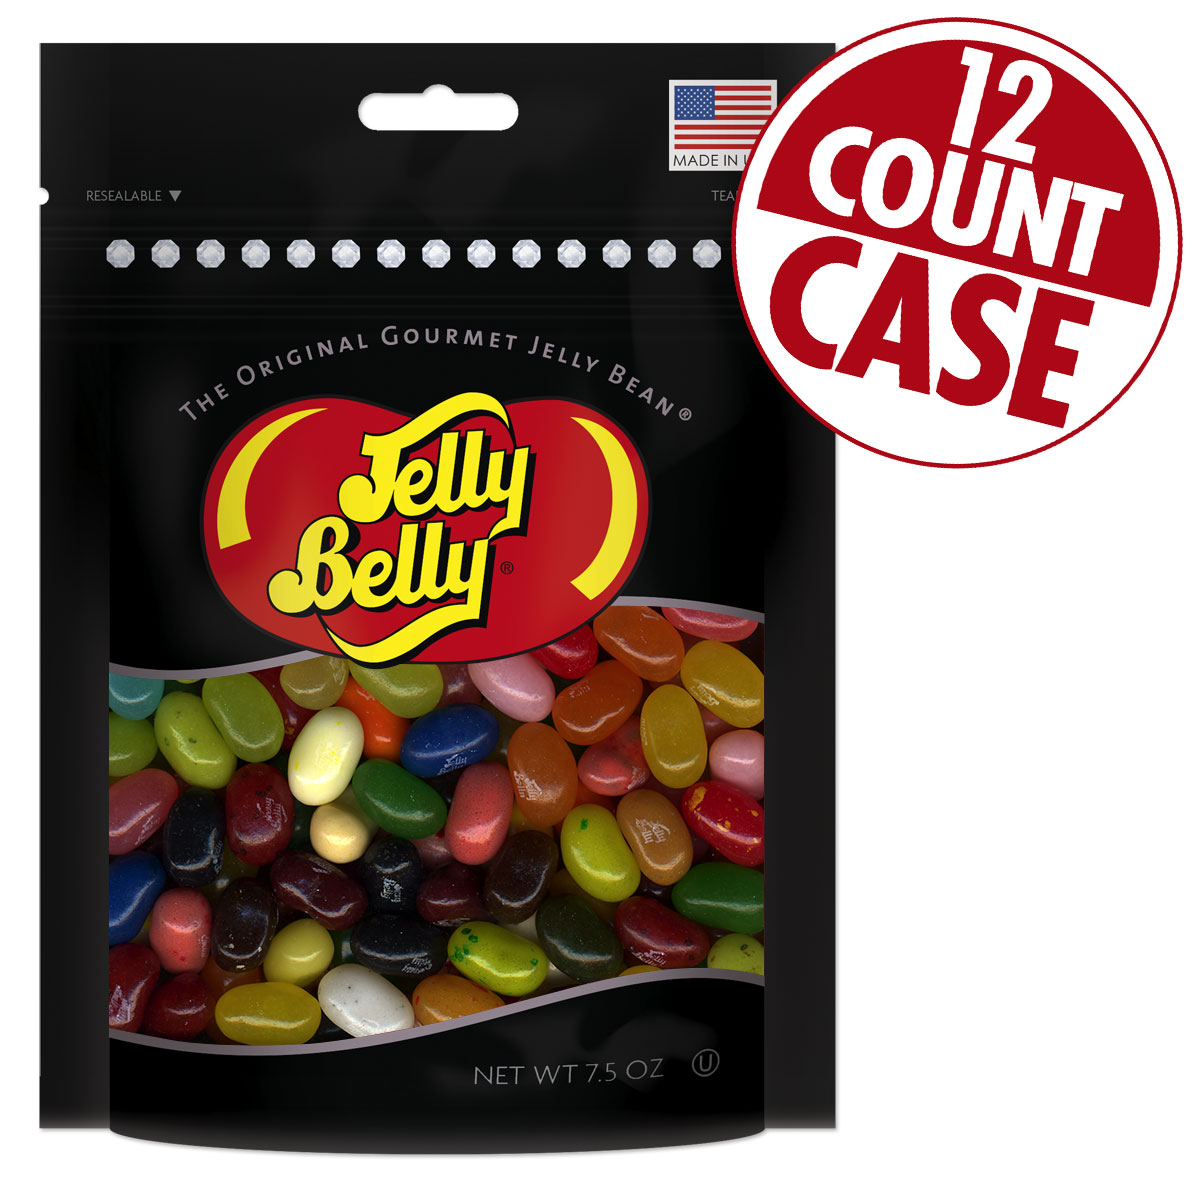 Assorted Jelly Beans Party Bag - 7.5 oz Bag - 12 Count Case